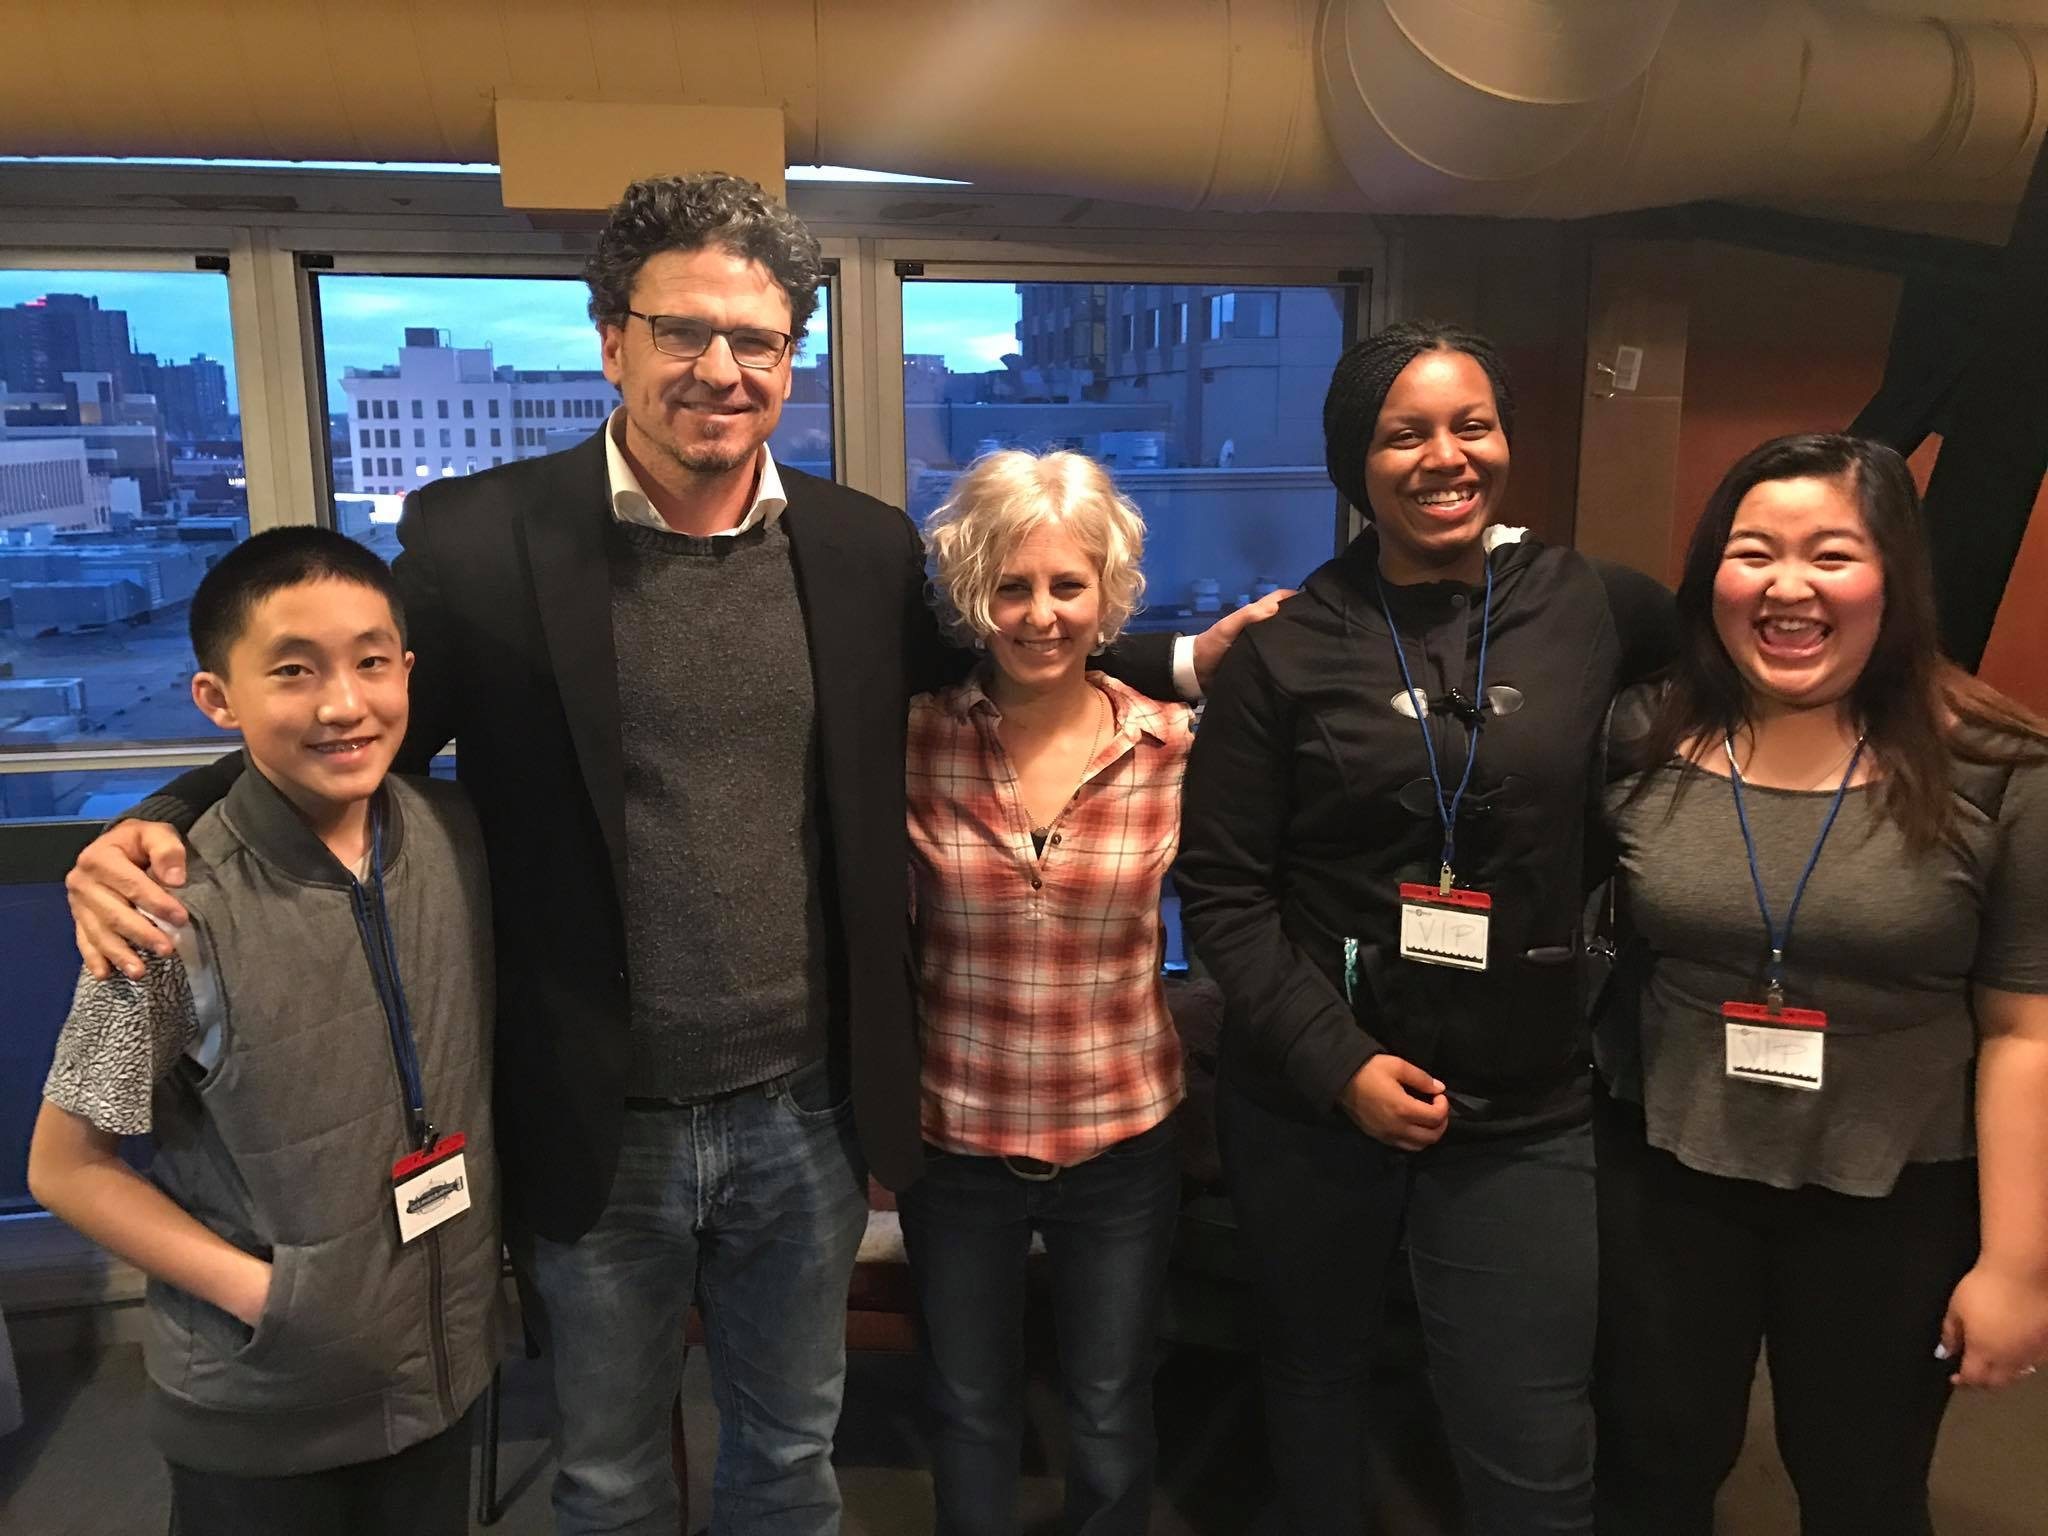 From left to right: Phillip, Dave Eggers, Kate DiCamillo, Kortney, Way.